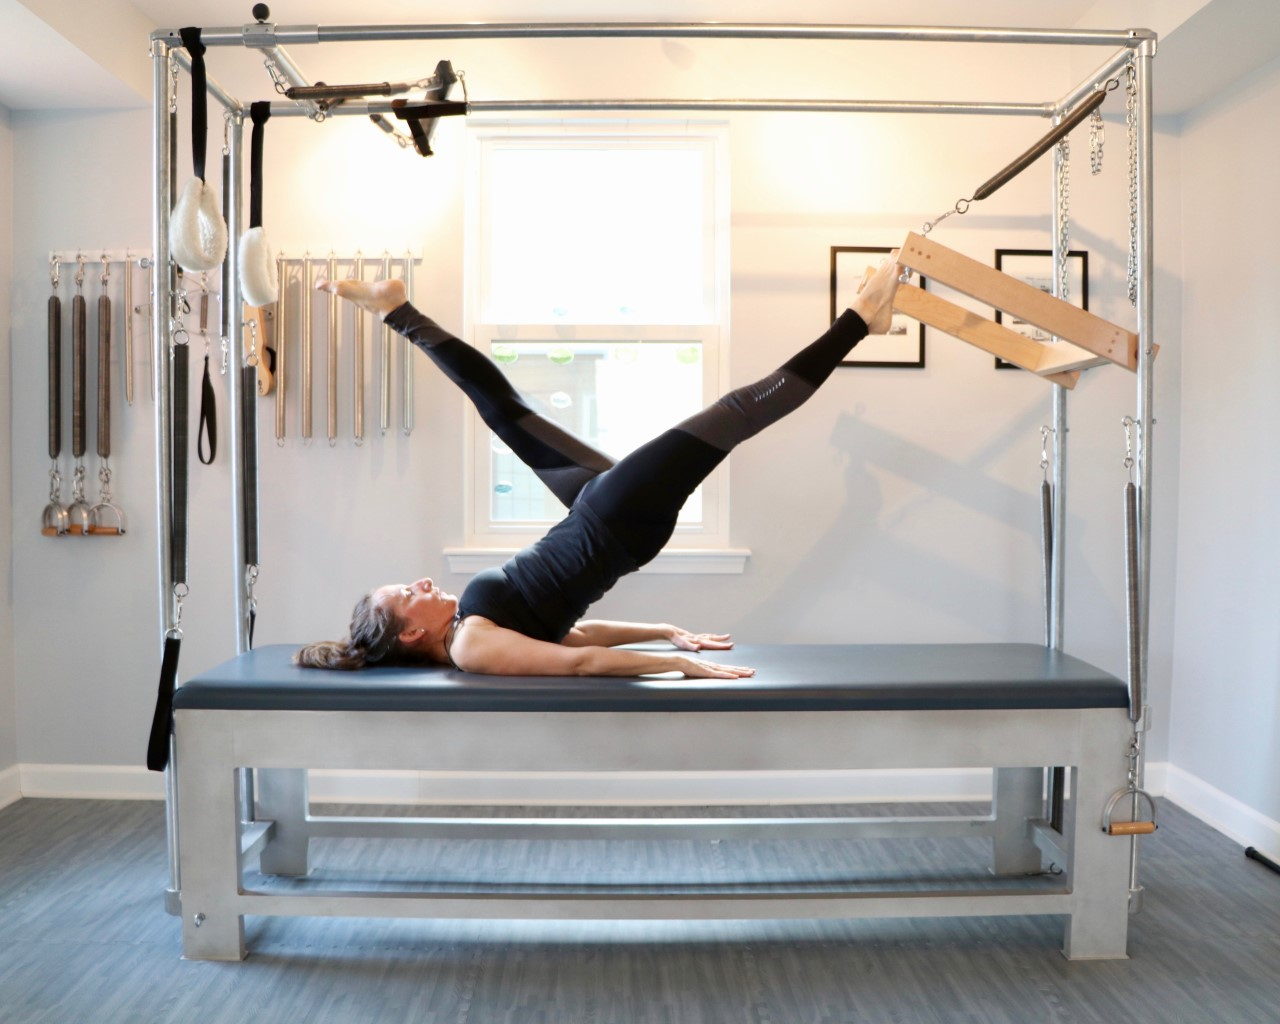 thumbnail_Used - IMG_7158 - down stretch on the reformer. crop sides.jpg